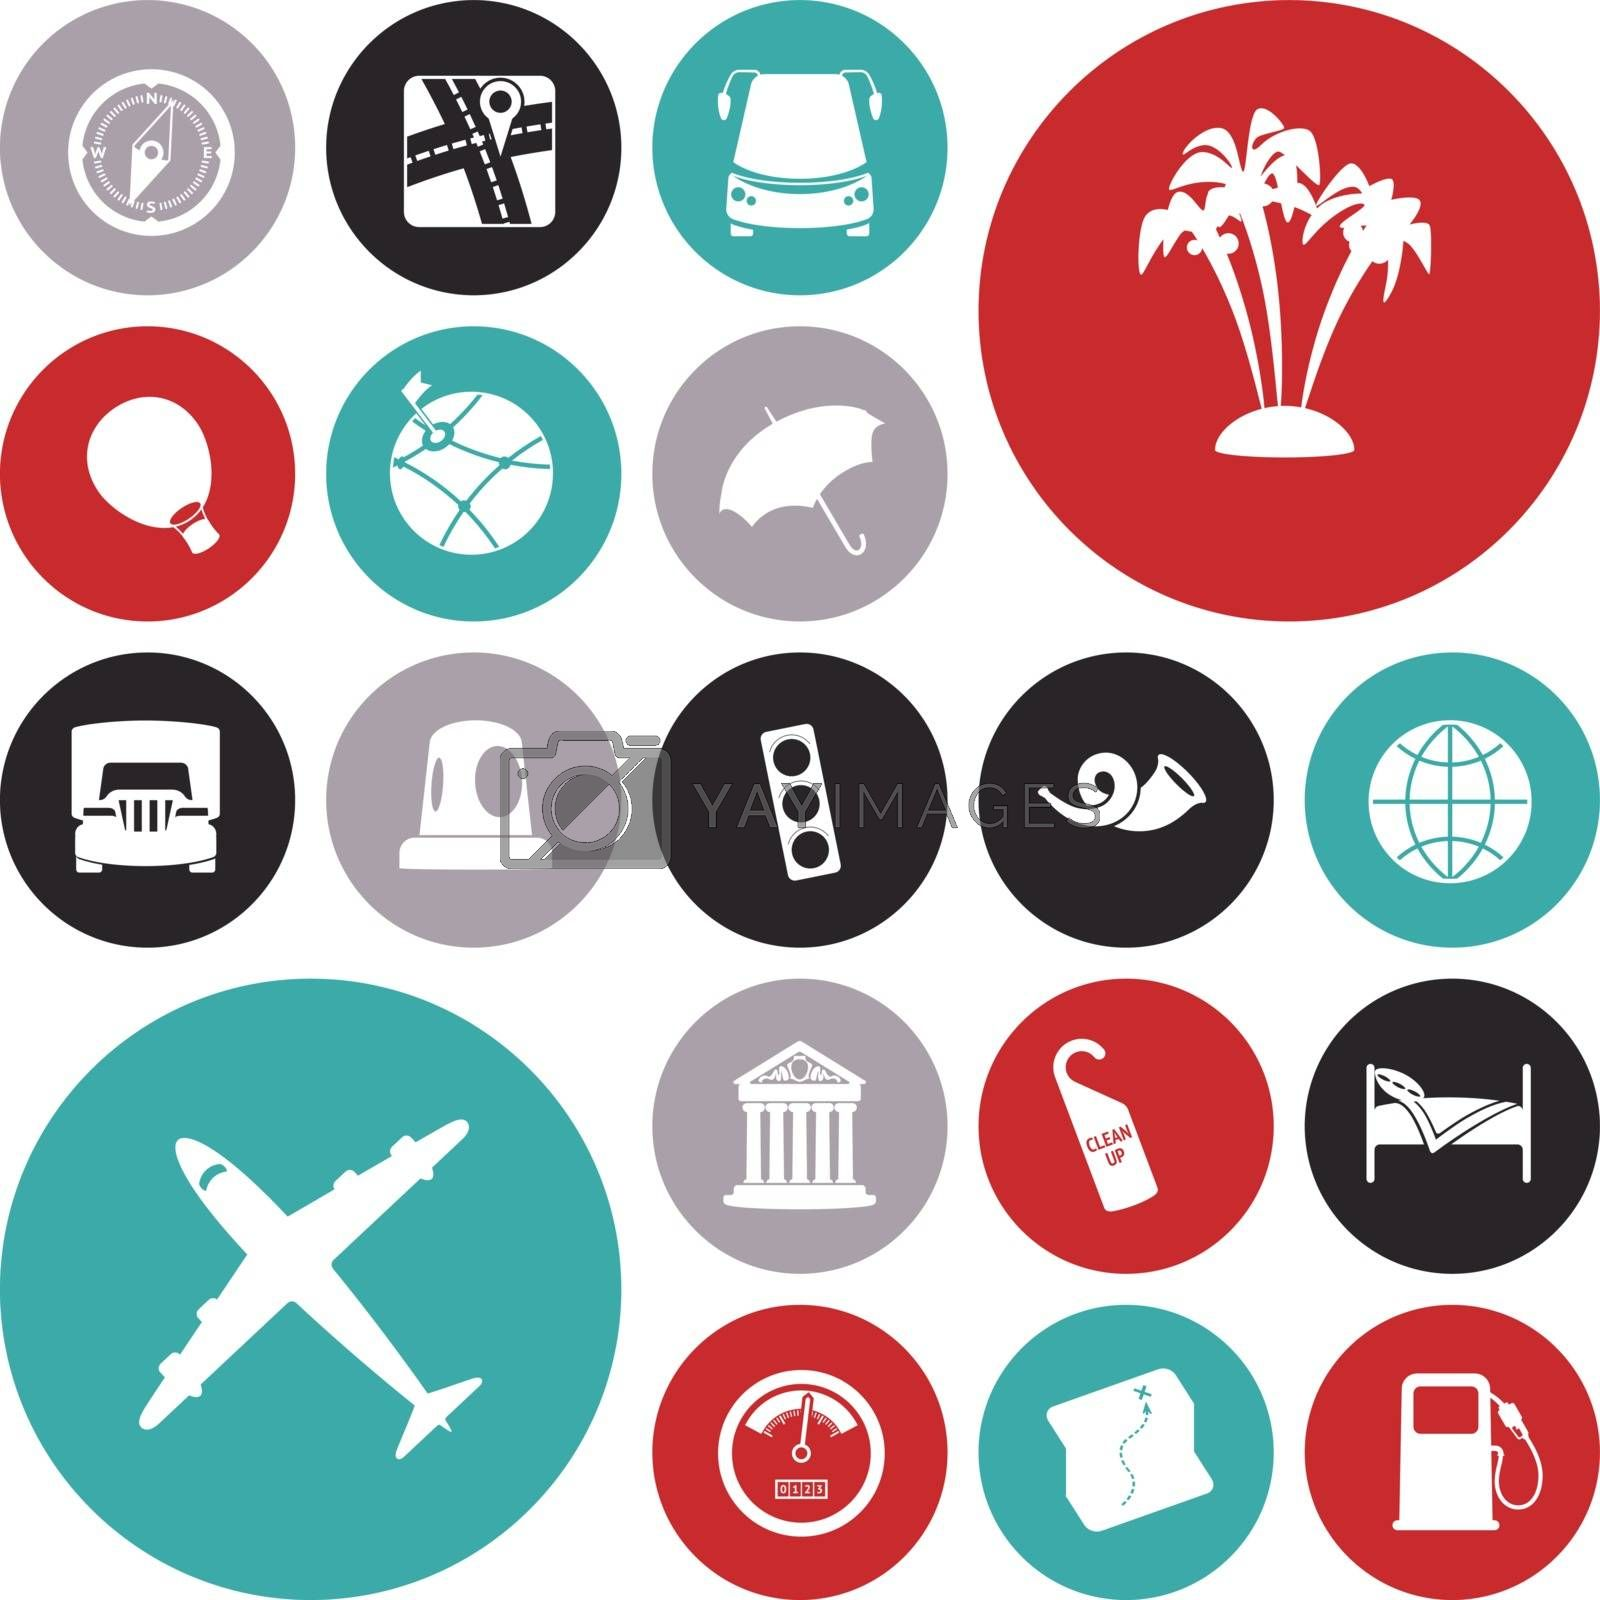 Flat design icons for travel and transportation. Vector illustration.